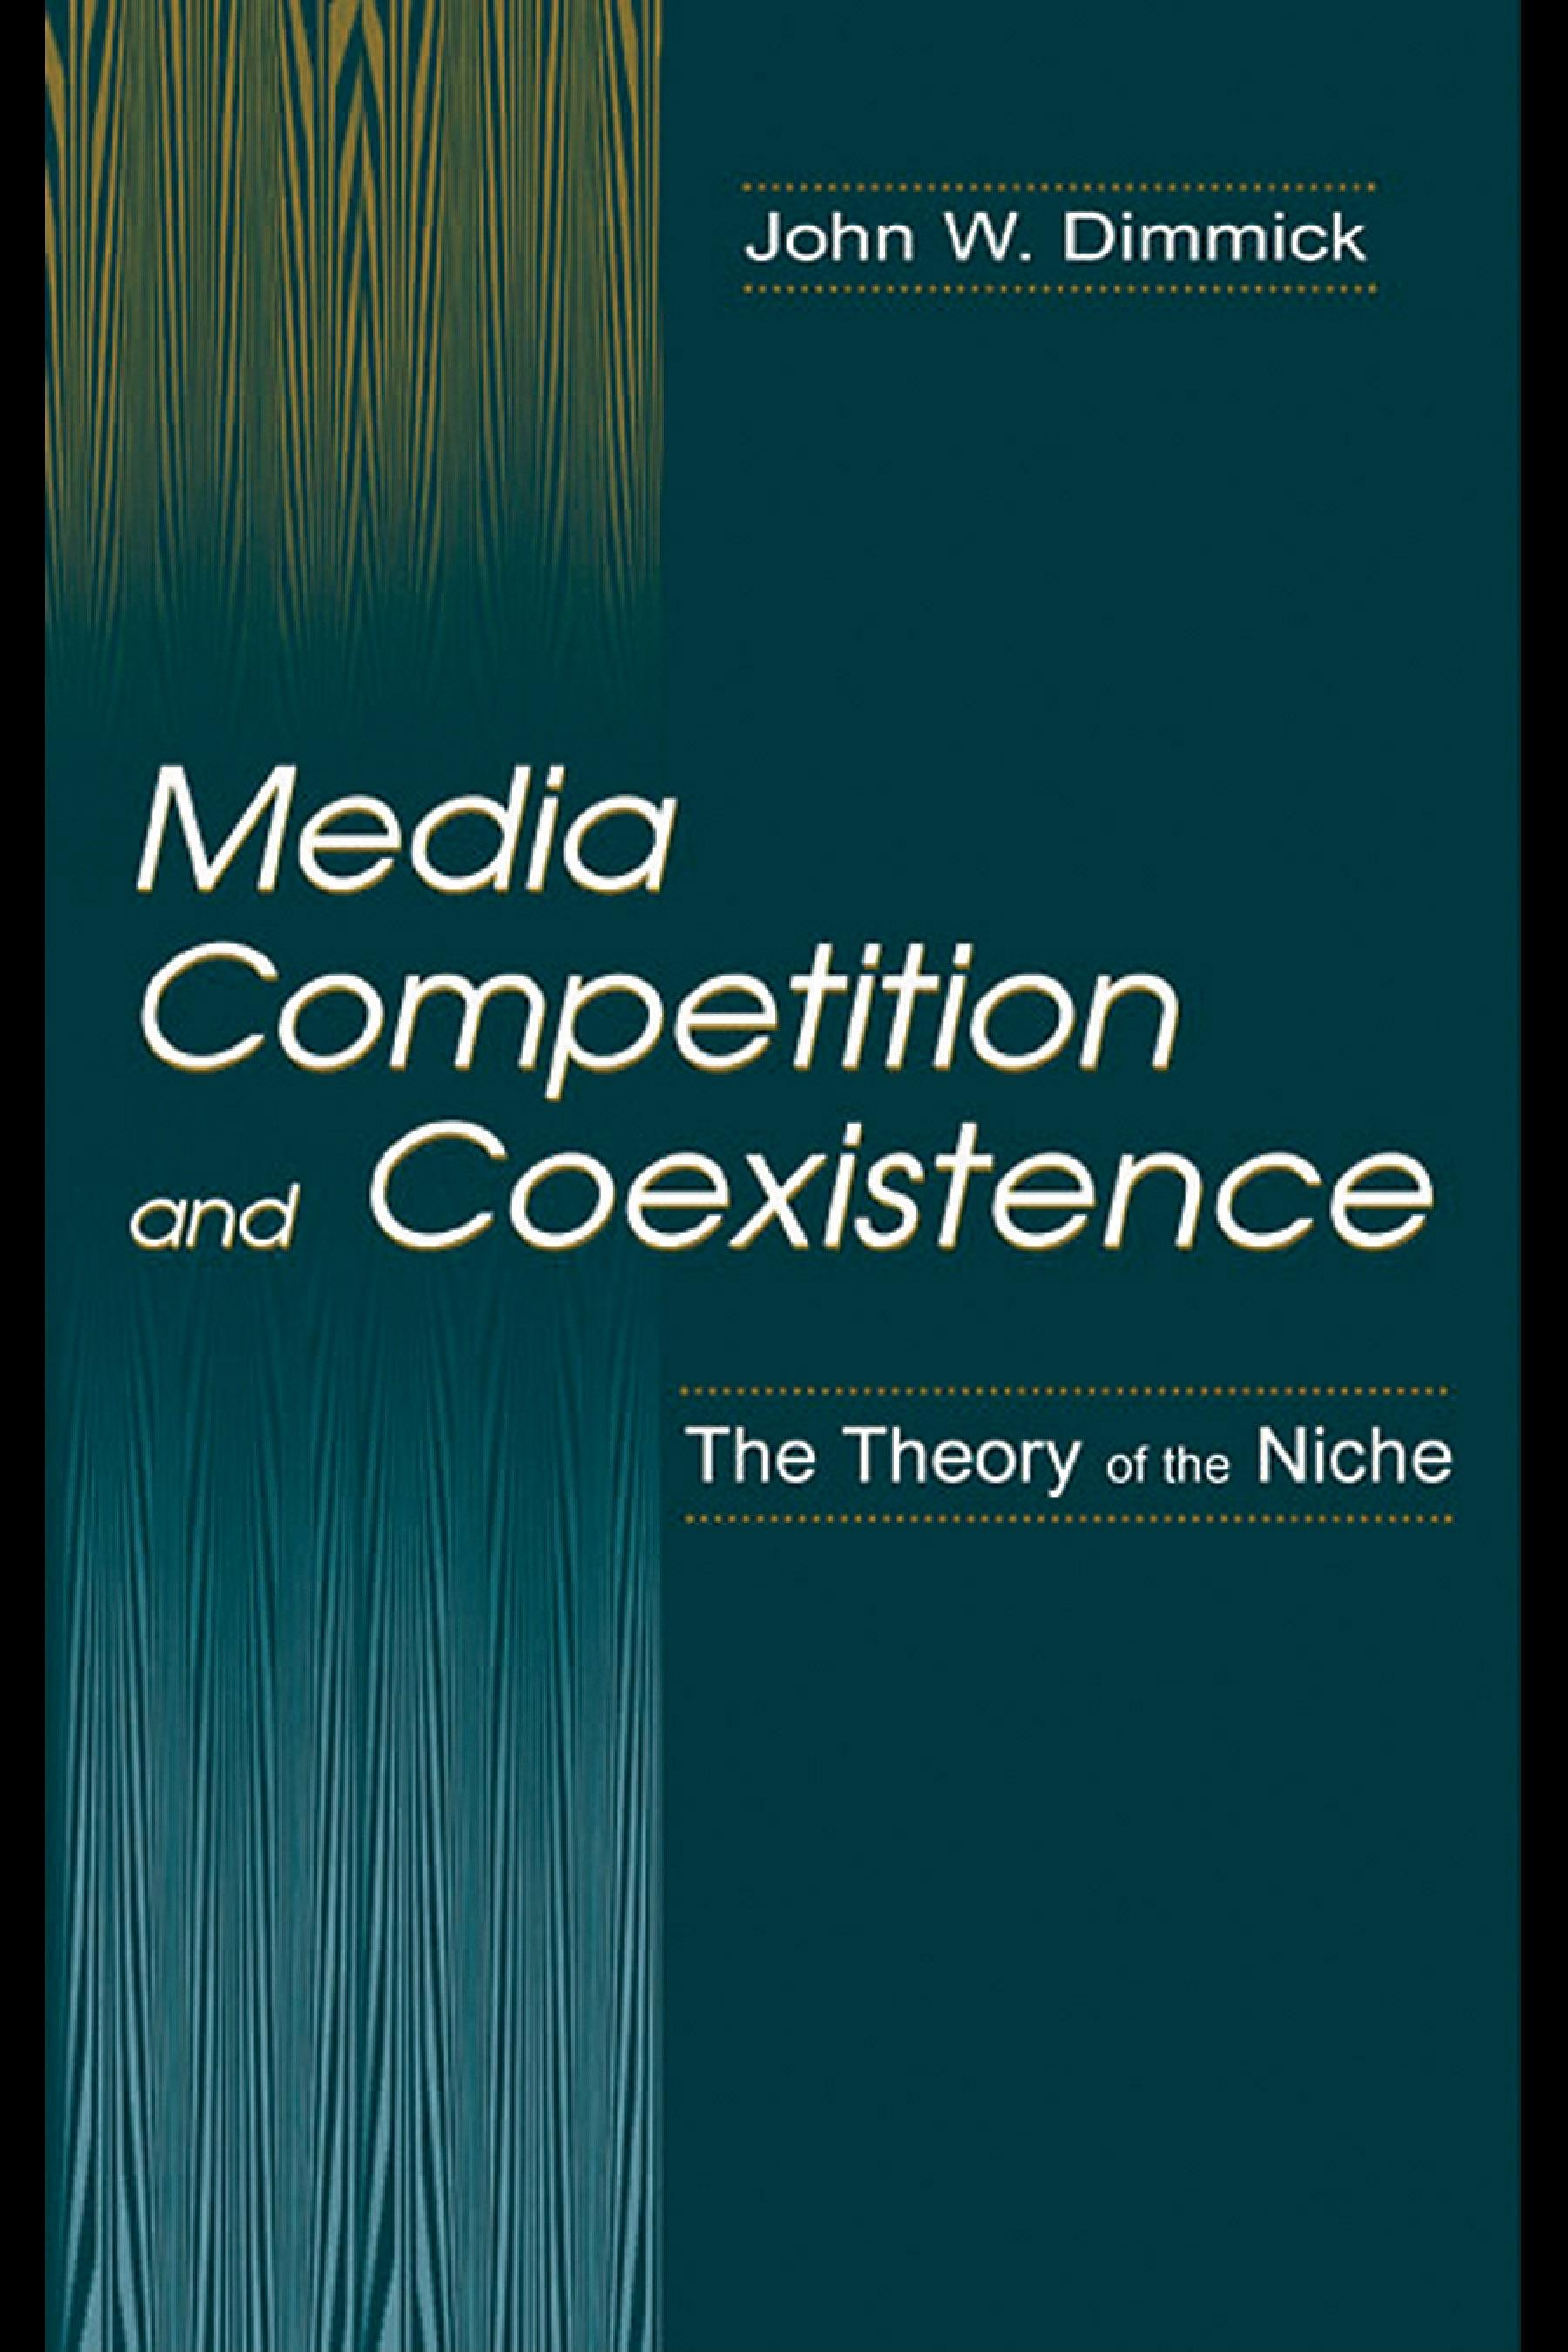 Media Competition and Coexistence: the theory of the Niche EB9781410606211